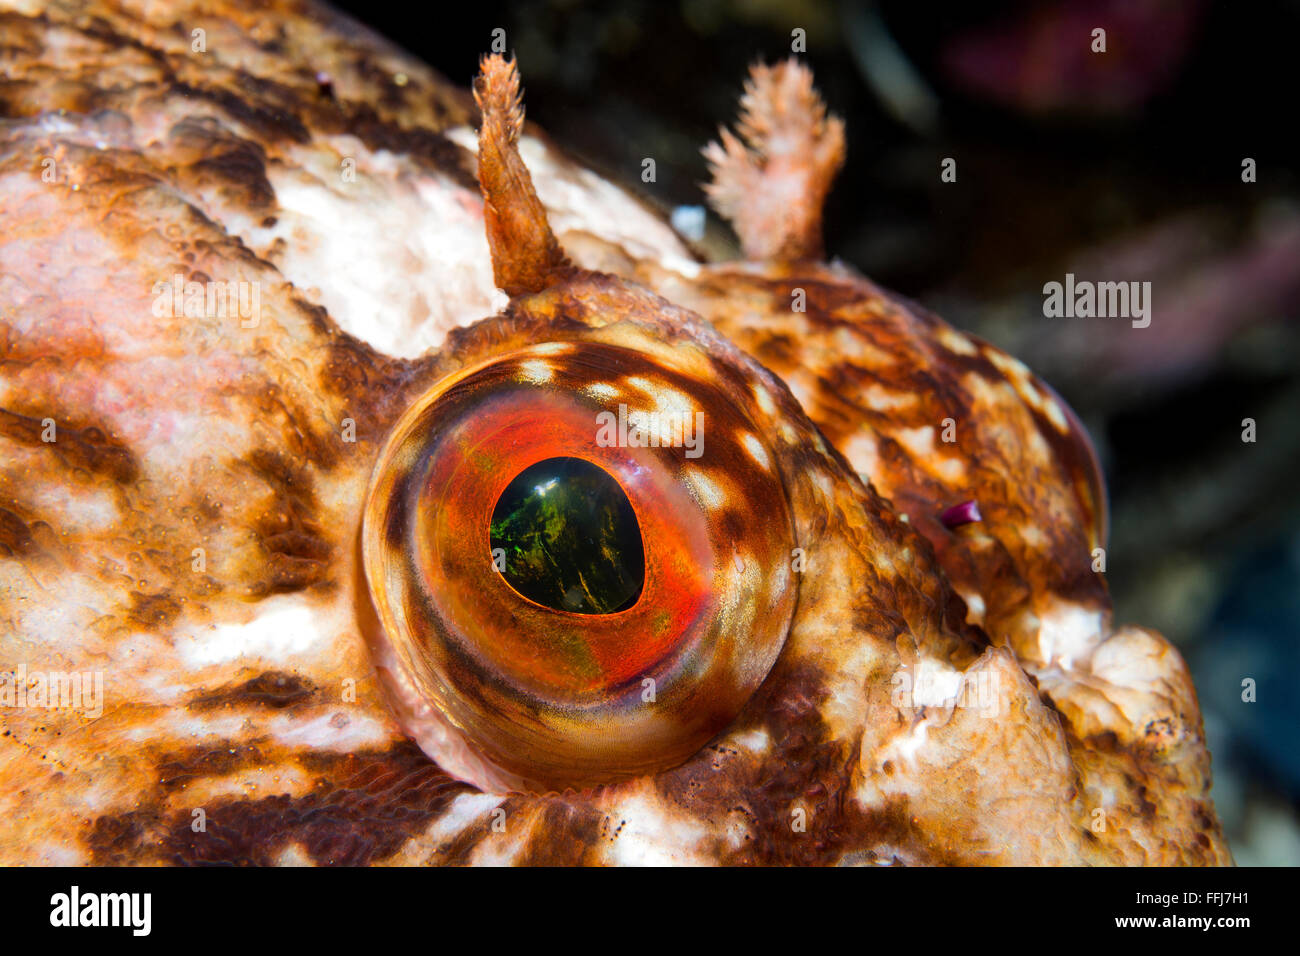 Close-up de l'oeil d'un curieux cabezon poisson dans l'eau fraîche en Californie Photo Stock